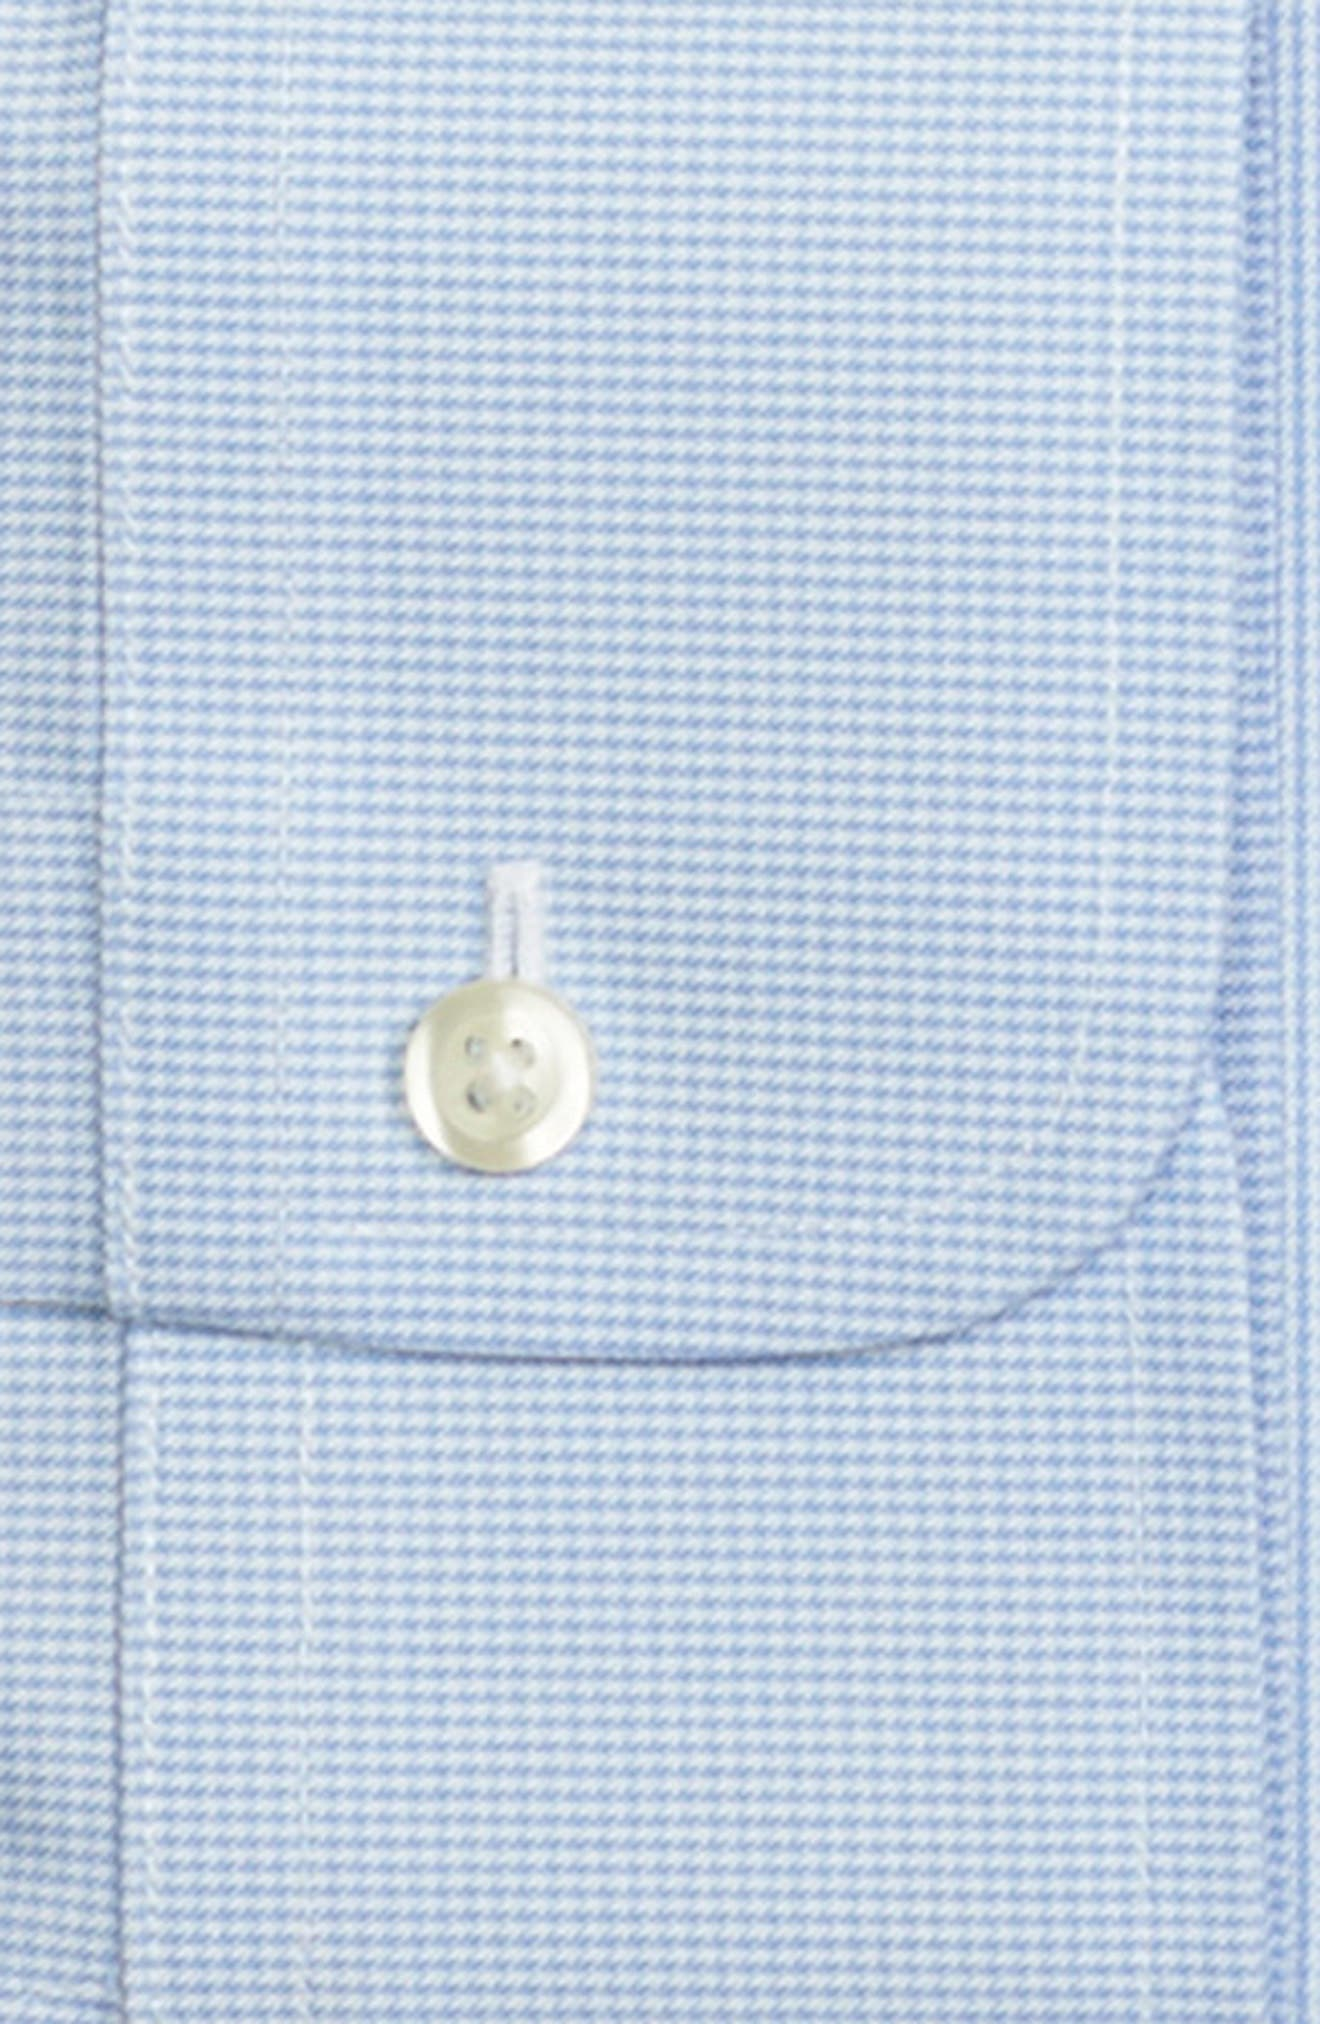 Regular Fit Houndstooth Dress Shirt,                             Alternate thumbnail 2, color,                             LIGHT/ PASTEL BLUE